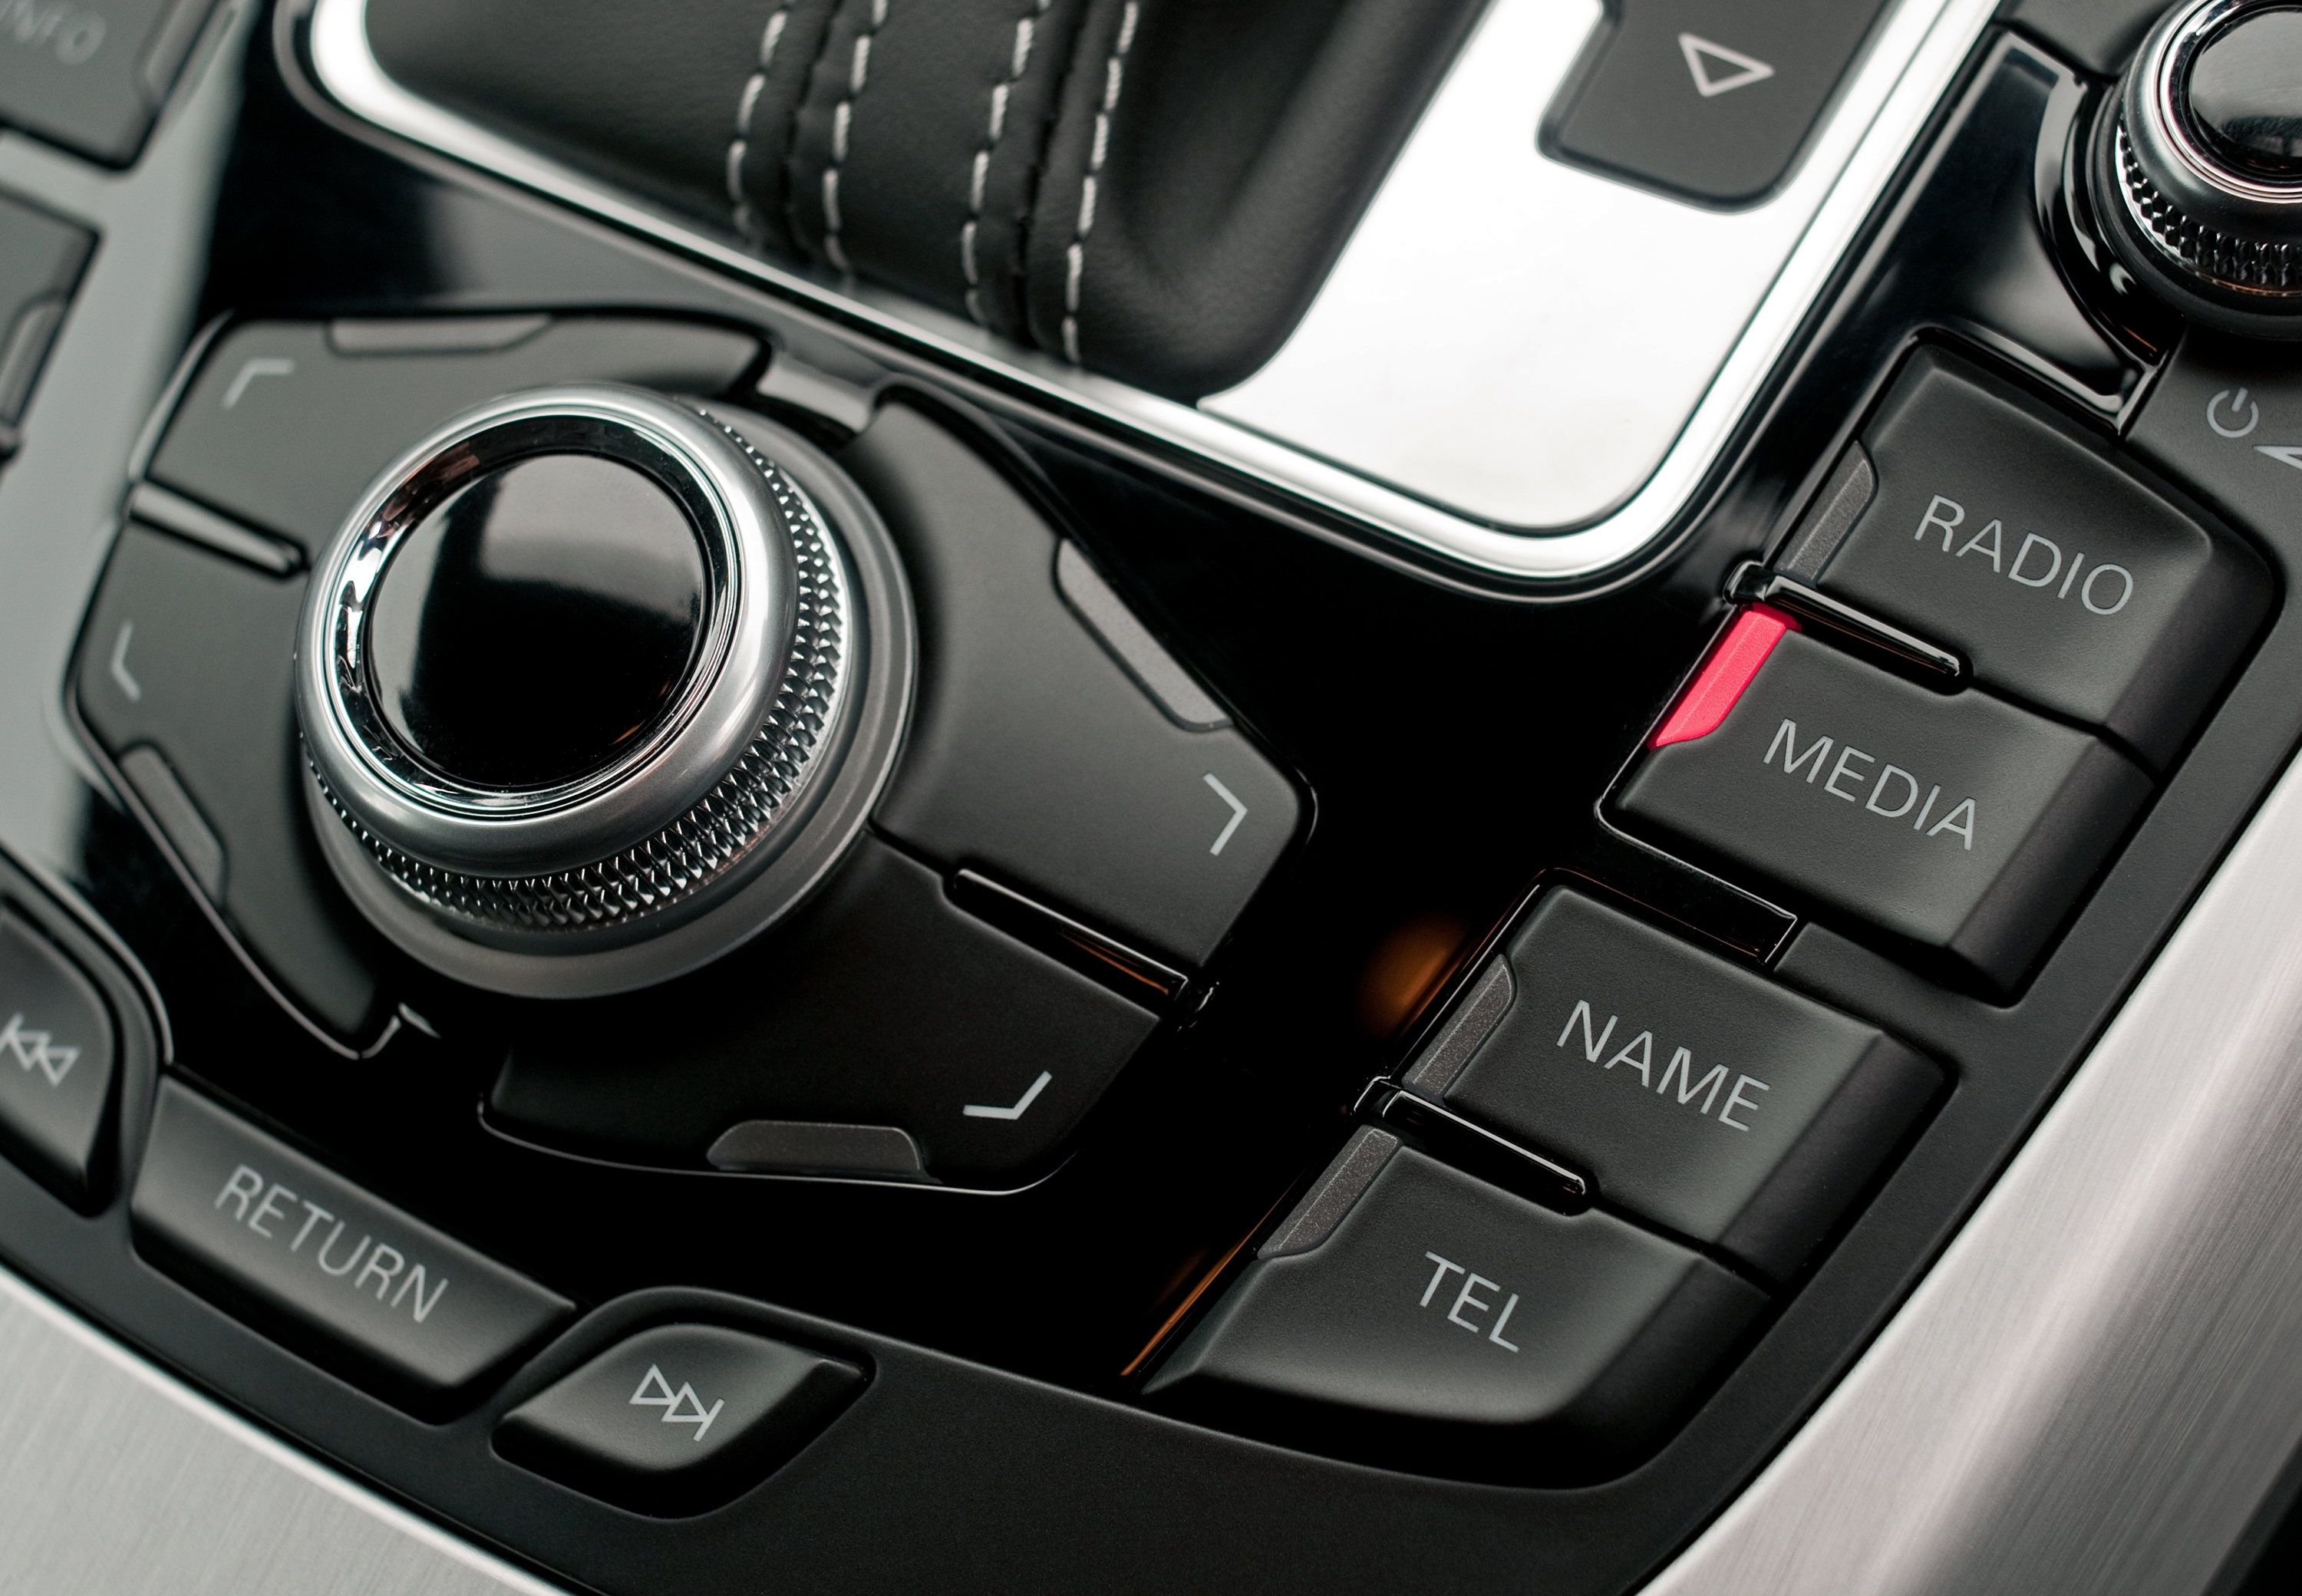 Audi A4 interior buttons